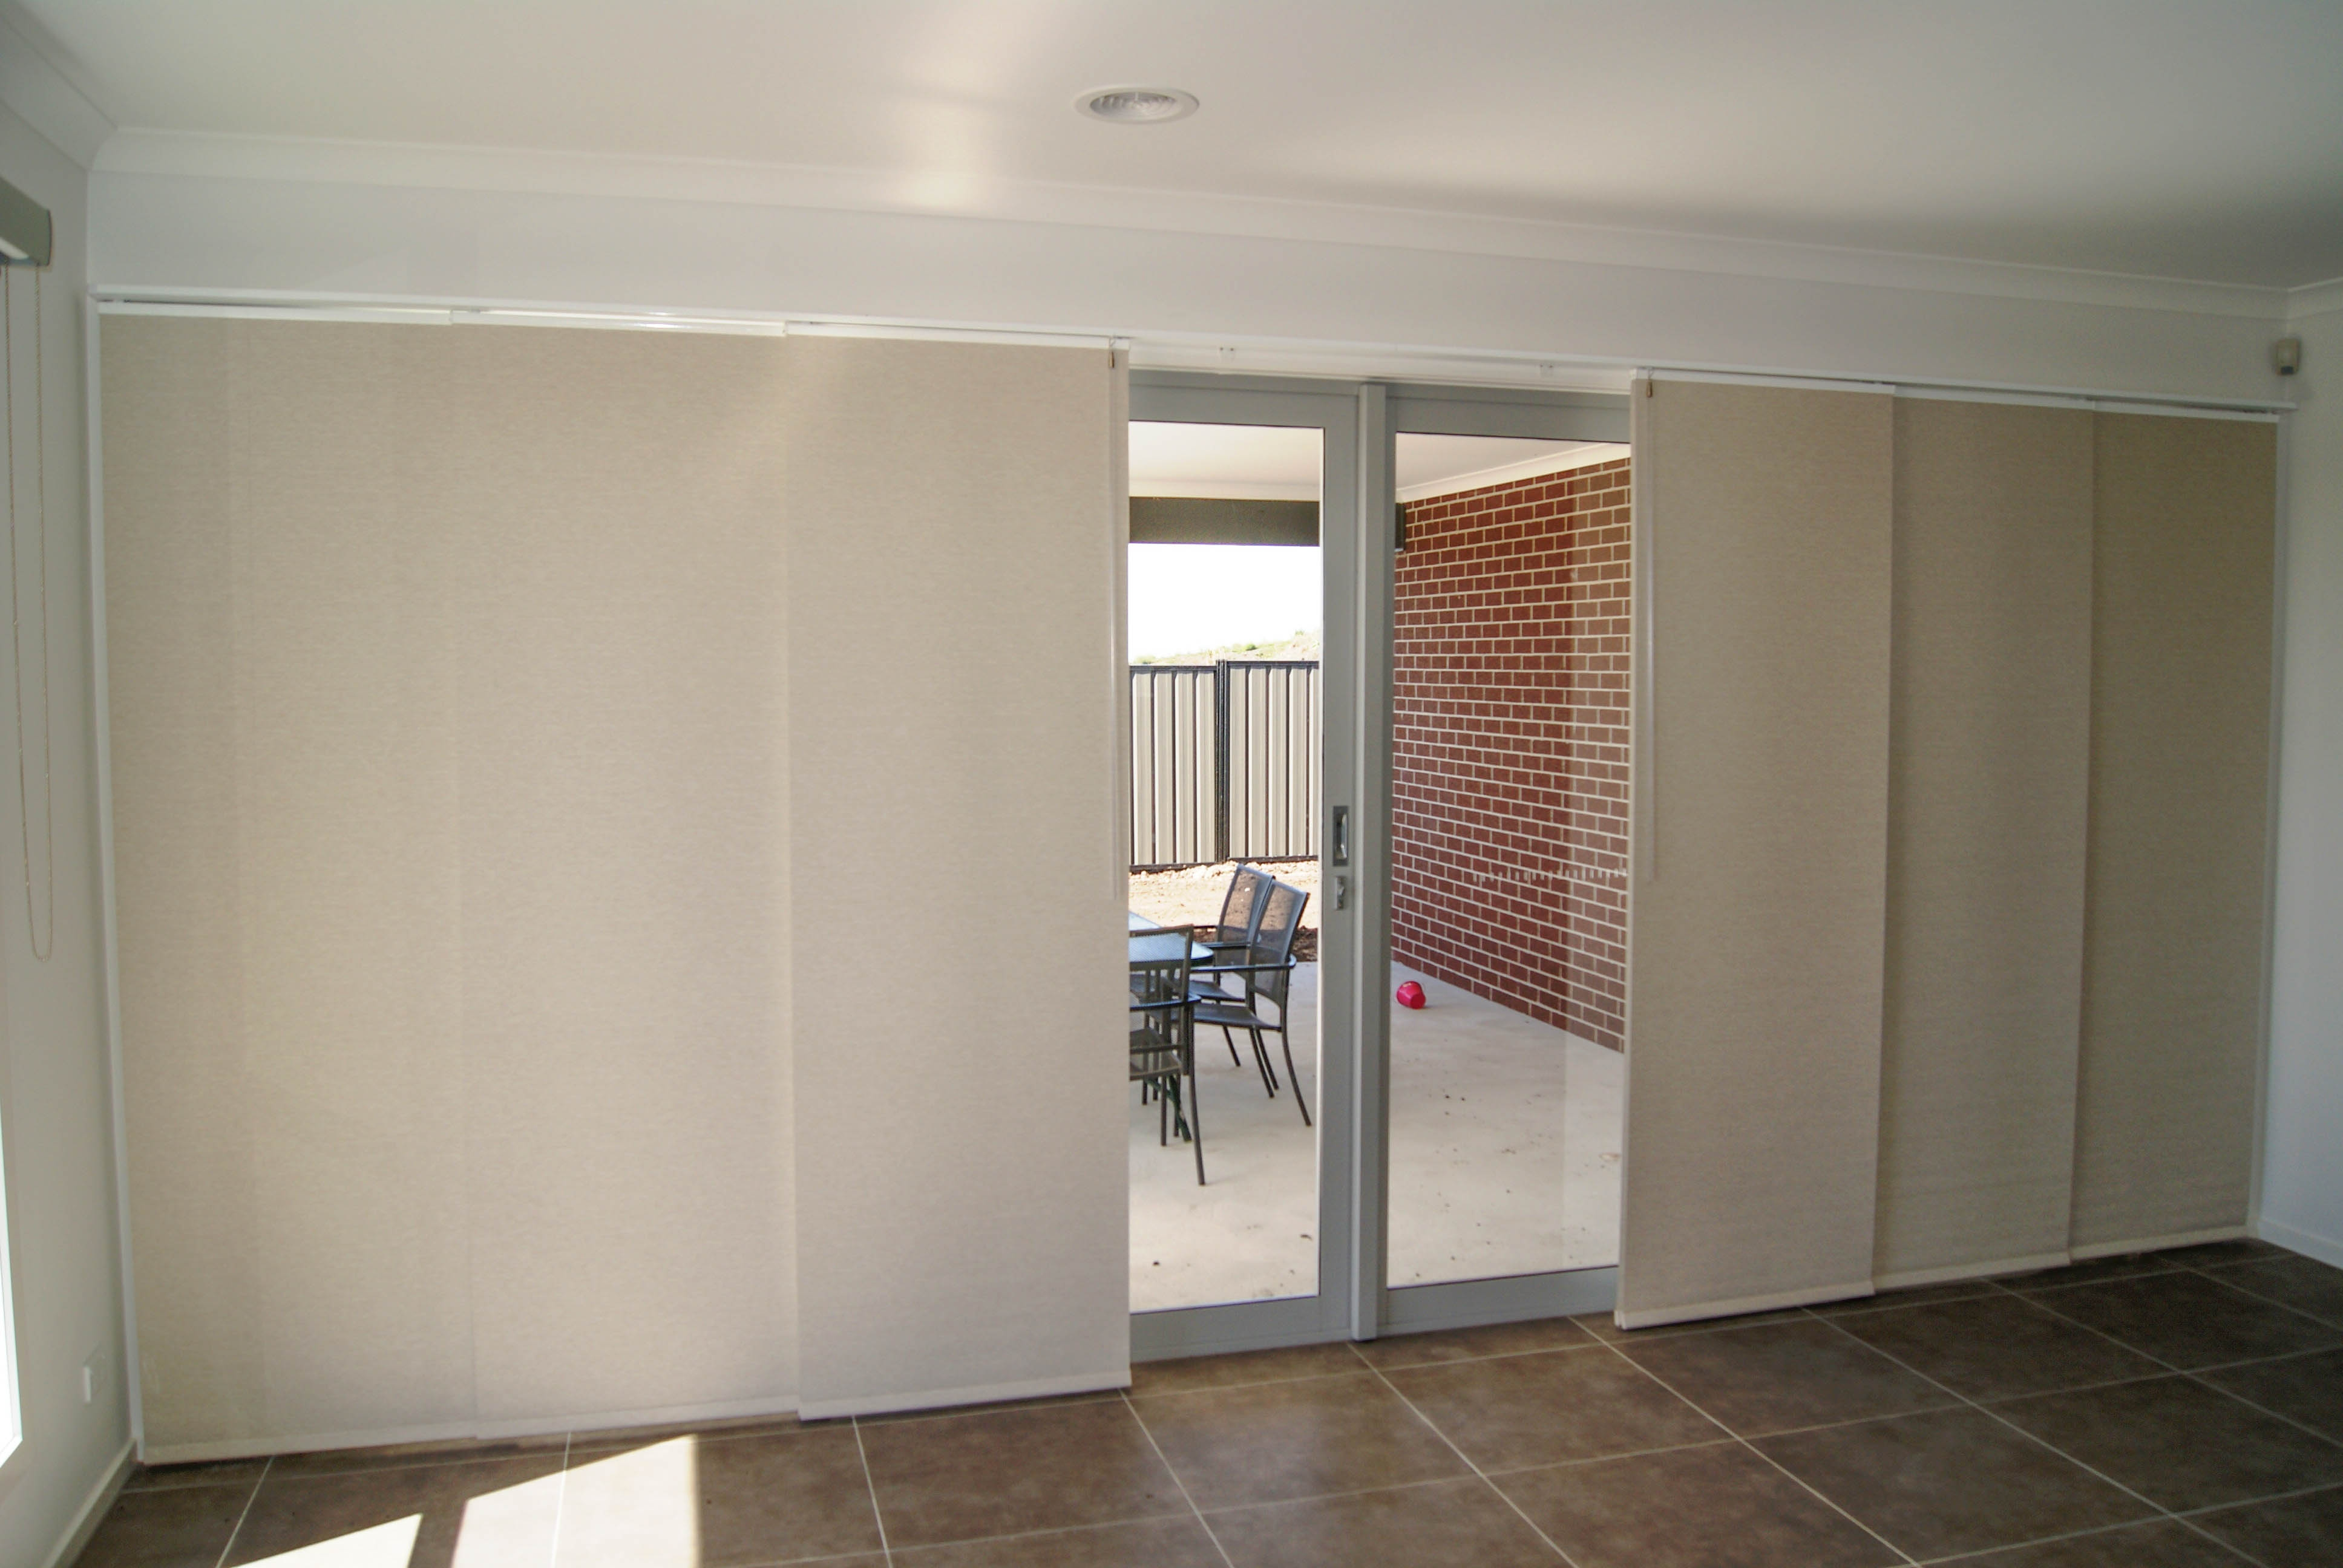 Panel Glide Blinds For Sliding Doors3872 X 2592